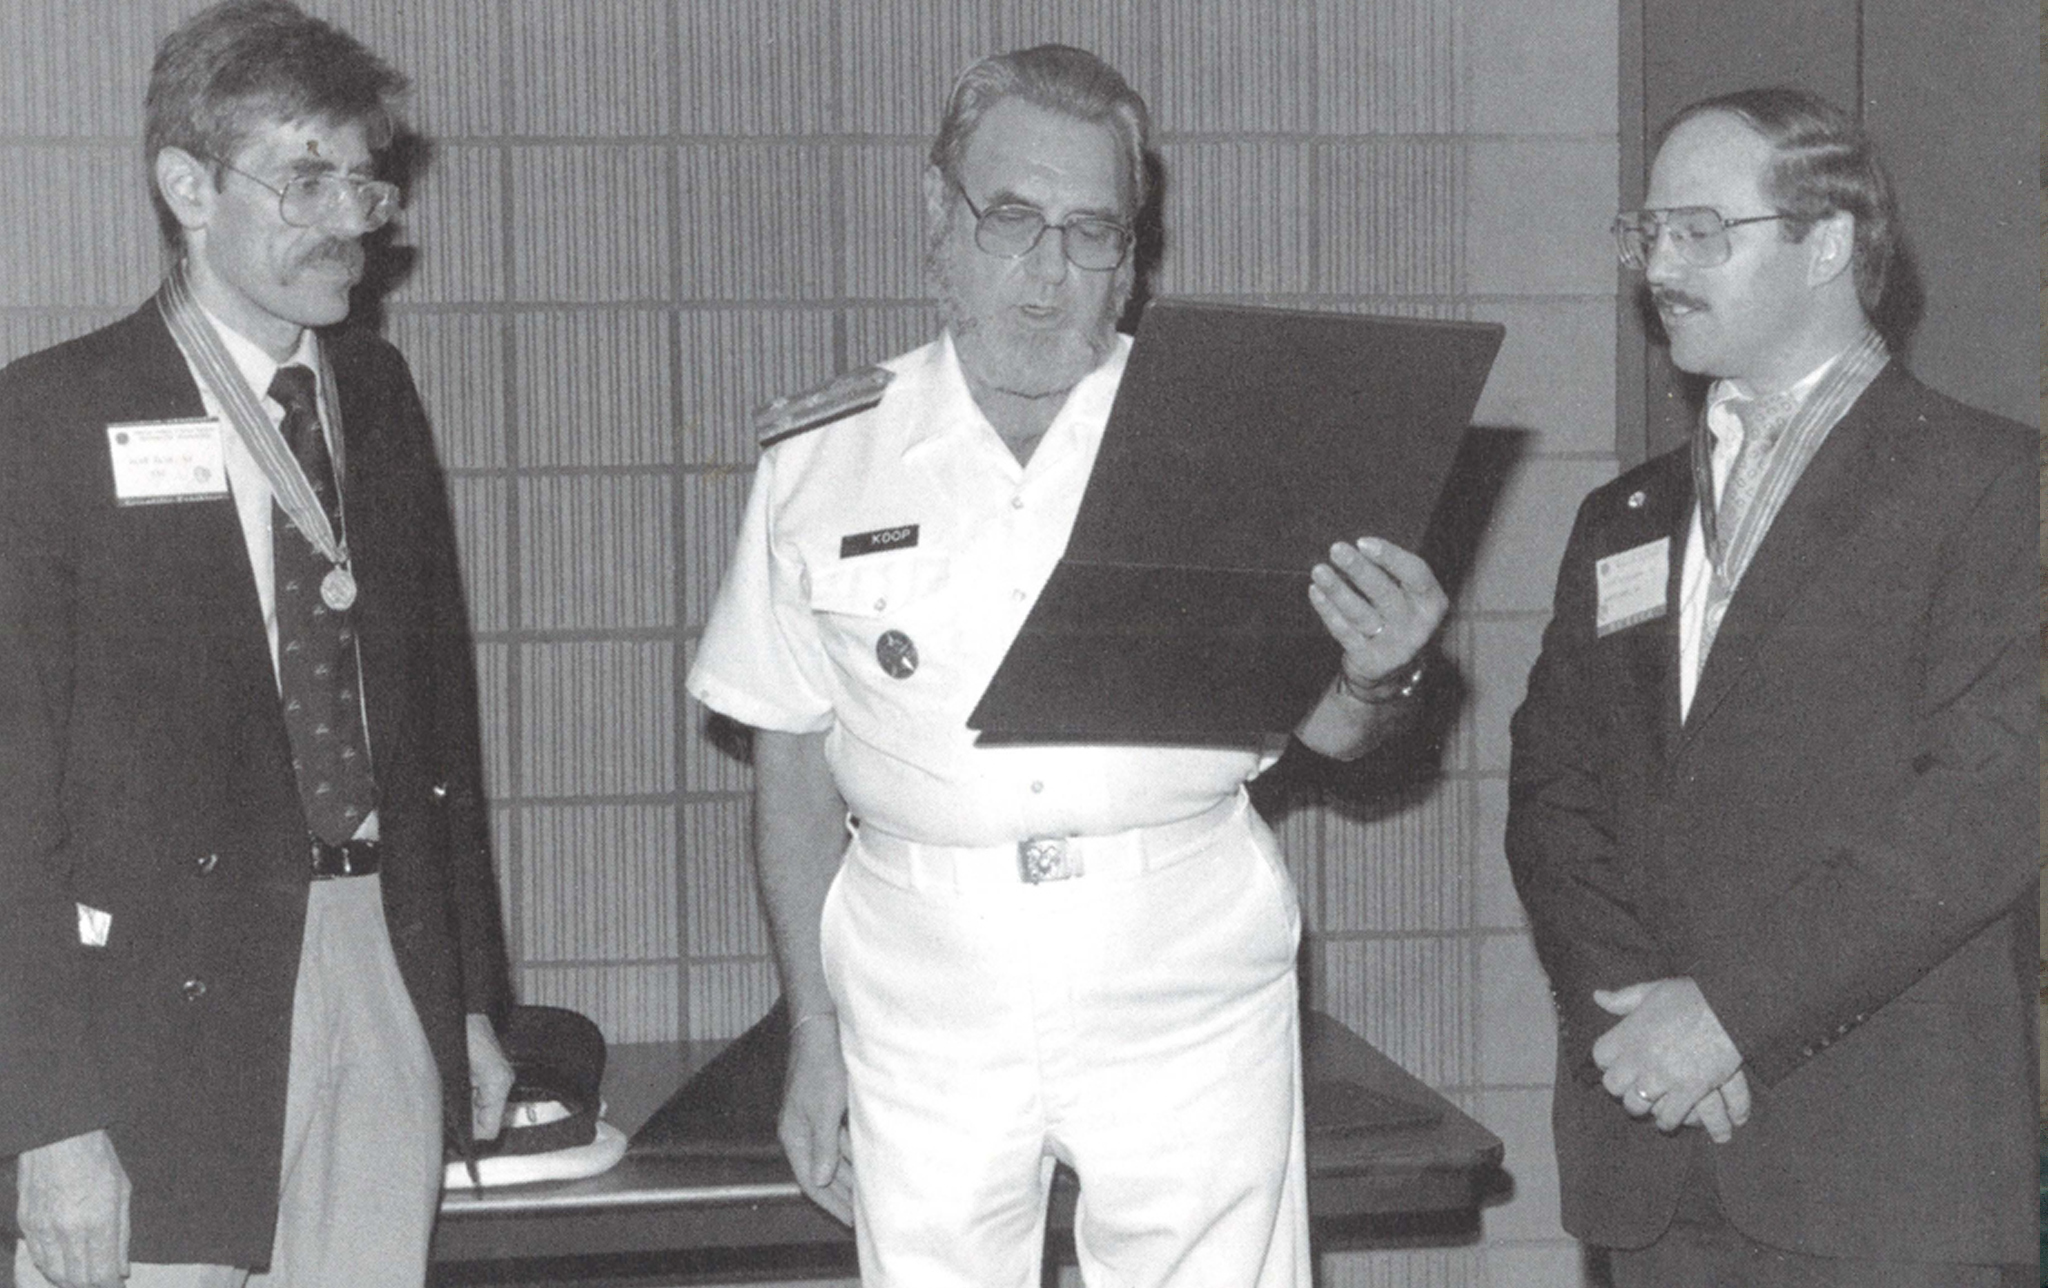 Dr. C. Everett Koop presents Drs. Rick Richards and Alan Blum with the Surgeon General's Medallion, 1988